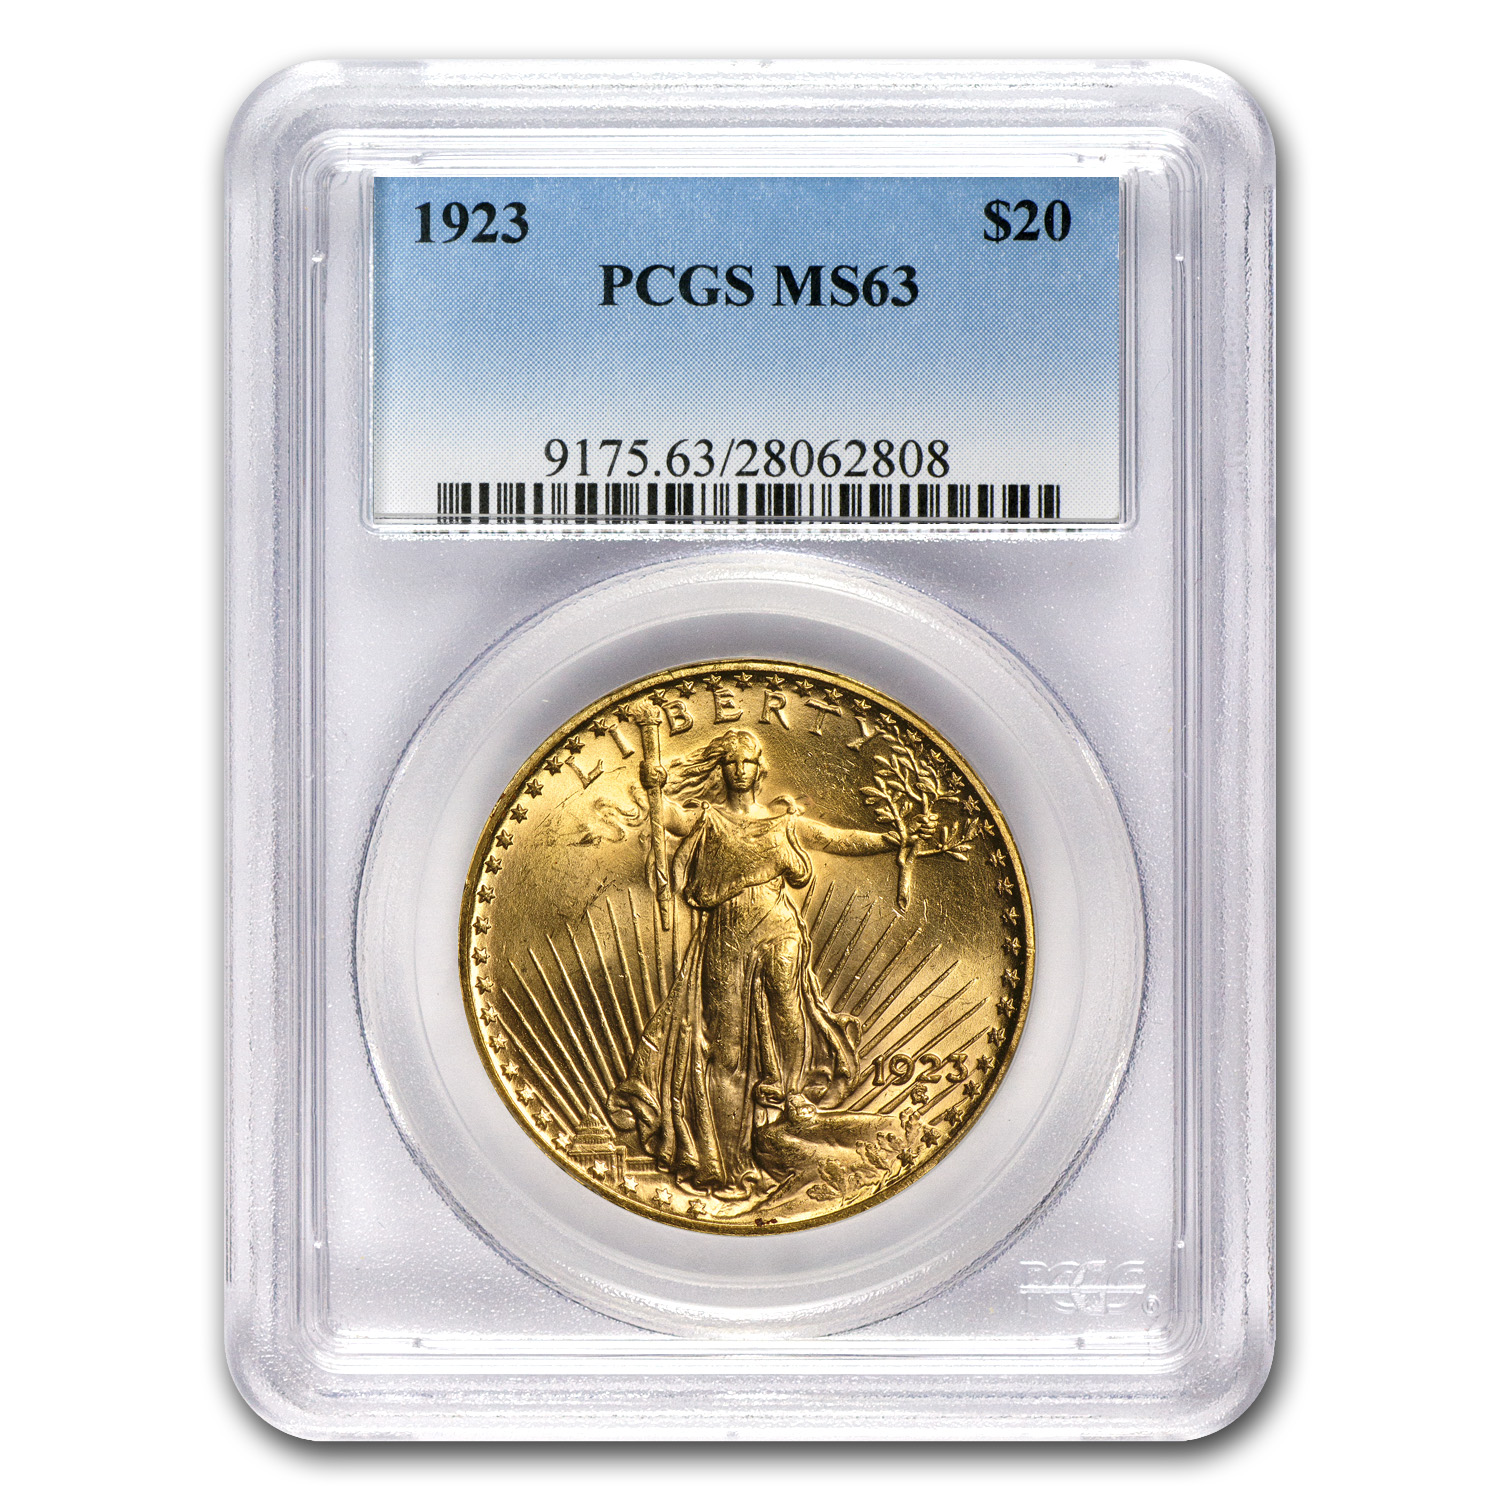 4-Coin $20 St. Gaudens Gold Double Eagle Set - MS-63 PCGS